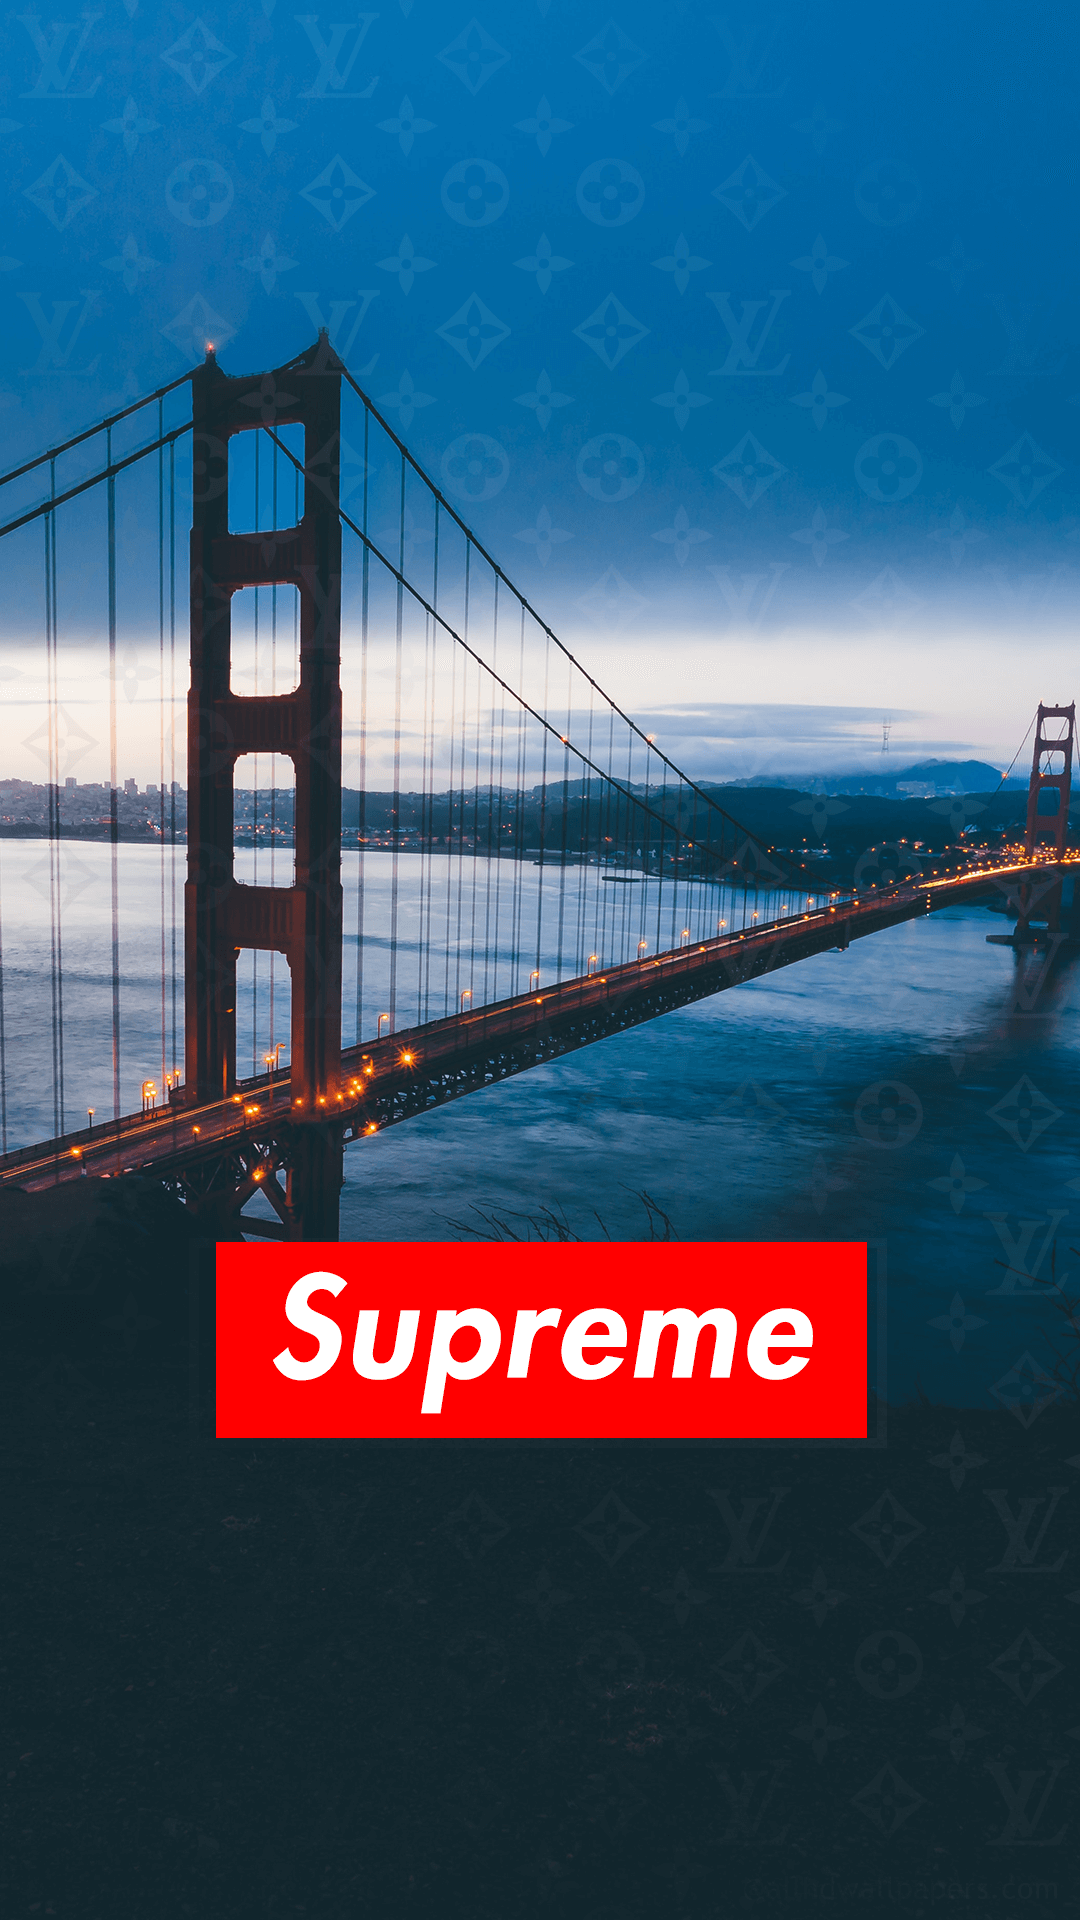 70  Supreme Wallpapers in 4K   AllHDWallpapers     Supreme Wallpaper for iphone